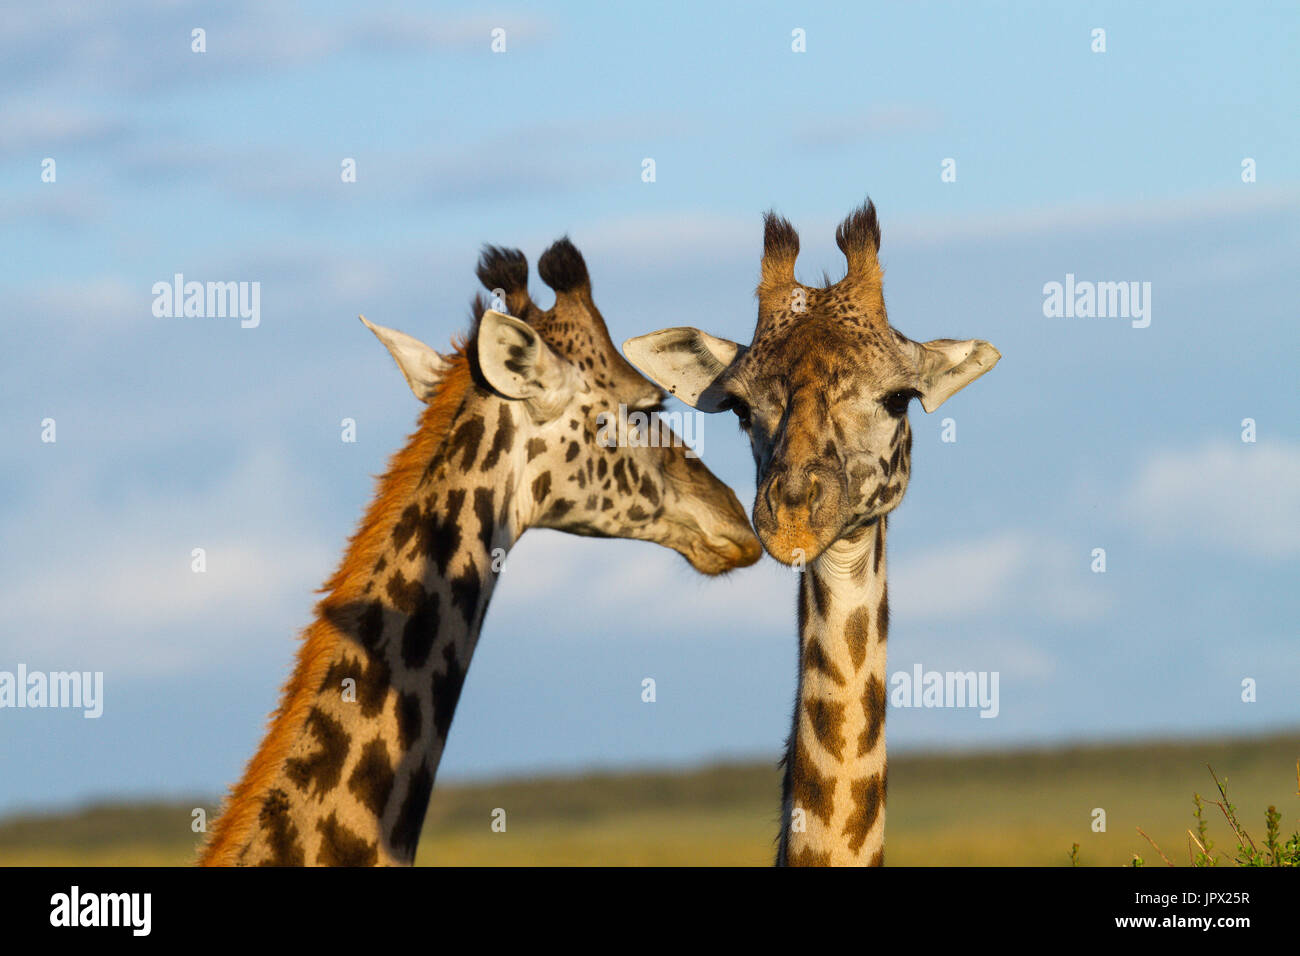 Portrait of Masai Giraffes in the savanna - Masai Mara Kenya - Stock Image